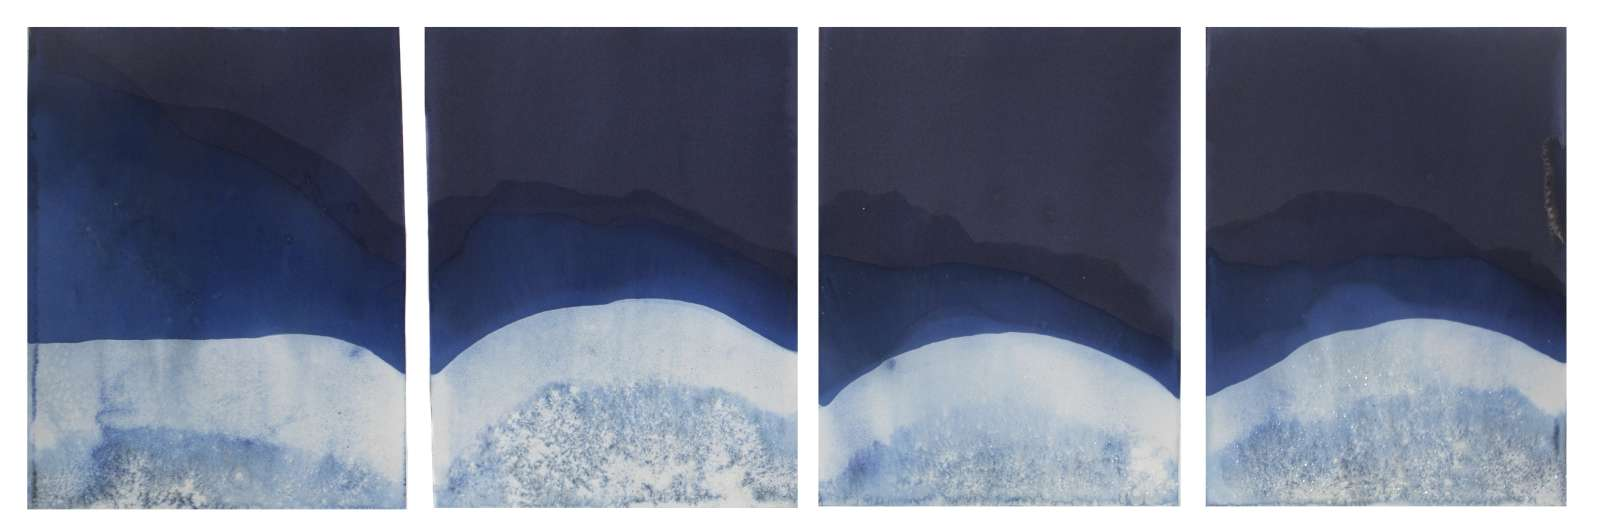 S.F. artist Meghann Riepenhoff works with waves on abstract works